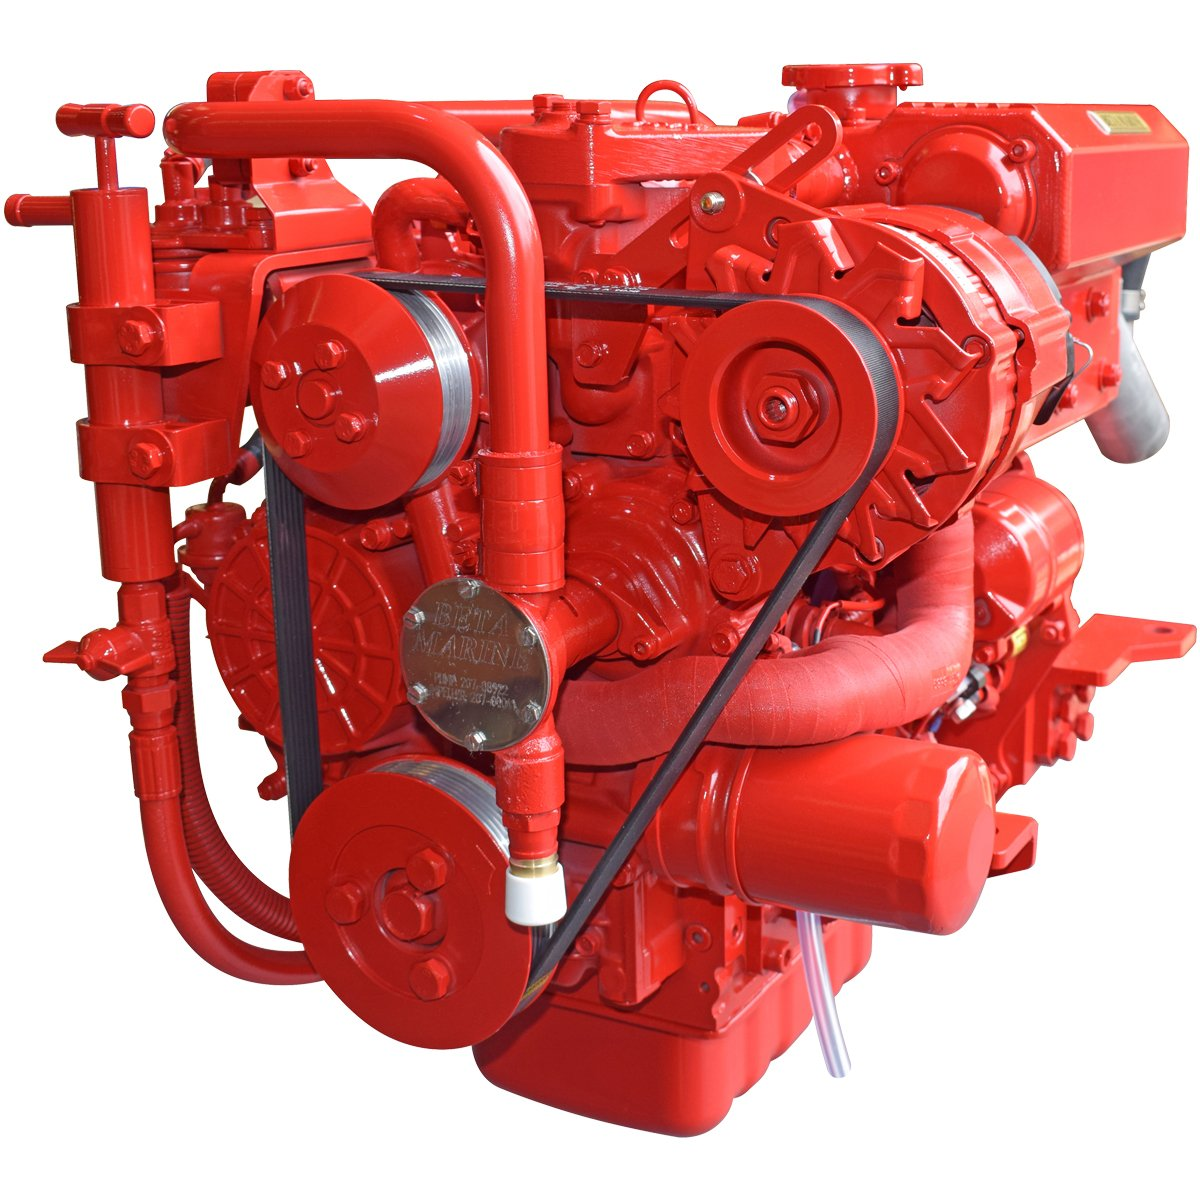 Beta Marine USA - marine diesel saildrive engines - Beta 30SD heat exchanger saildrive engine